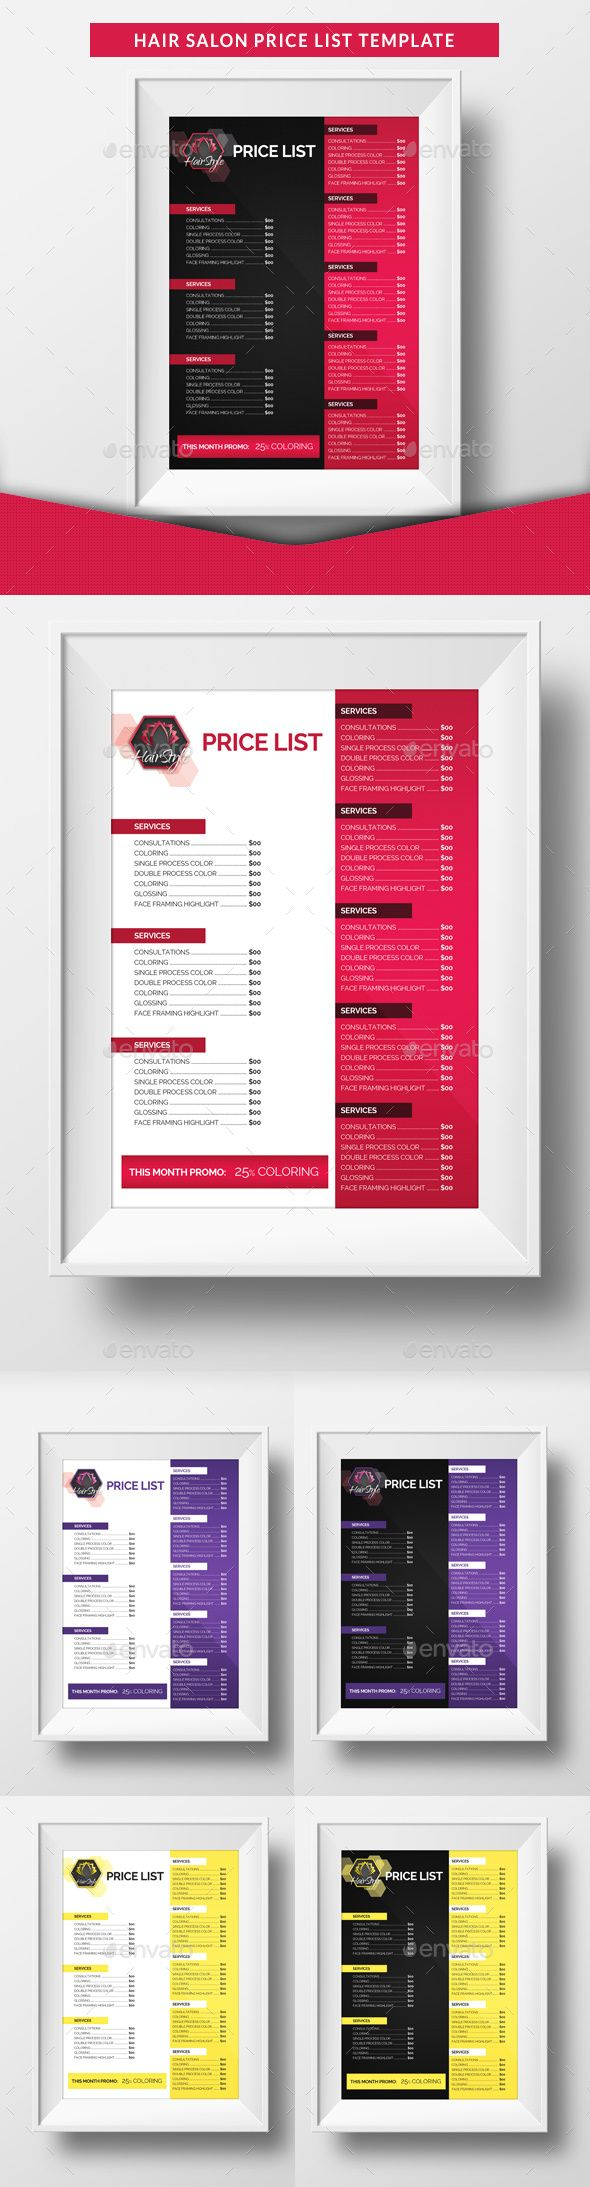 Hair Salon Price List Template — Photoshop PSD #golden #business • Available here → https://graphicriver.net/item/hair-salon-price-list-template/15553215?ref=pxcr